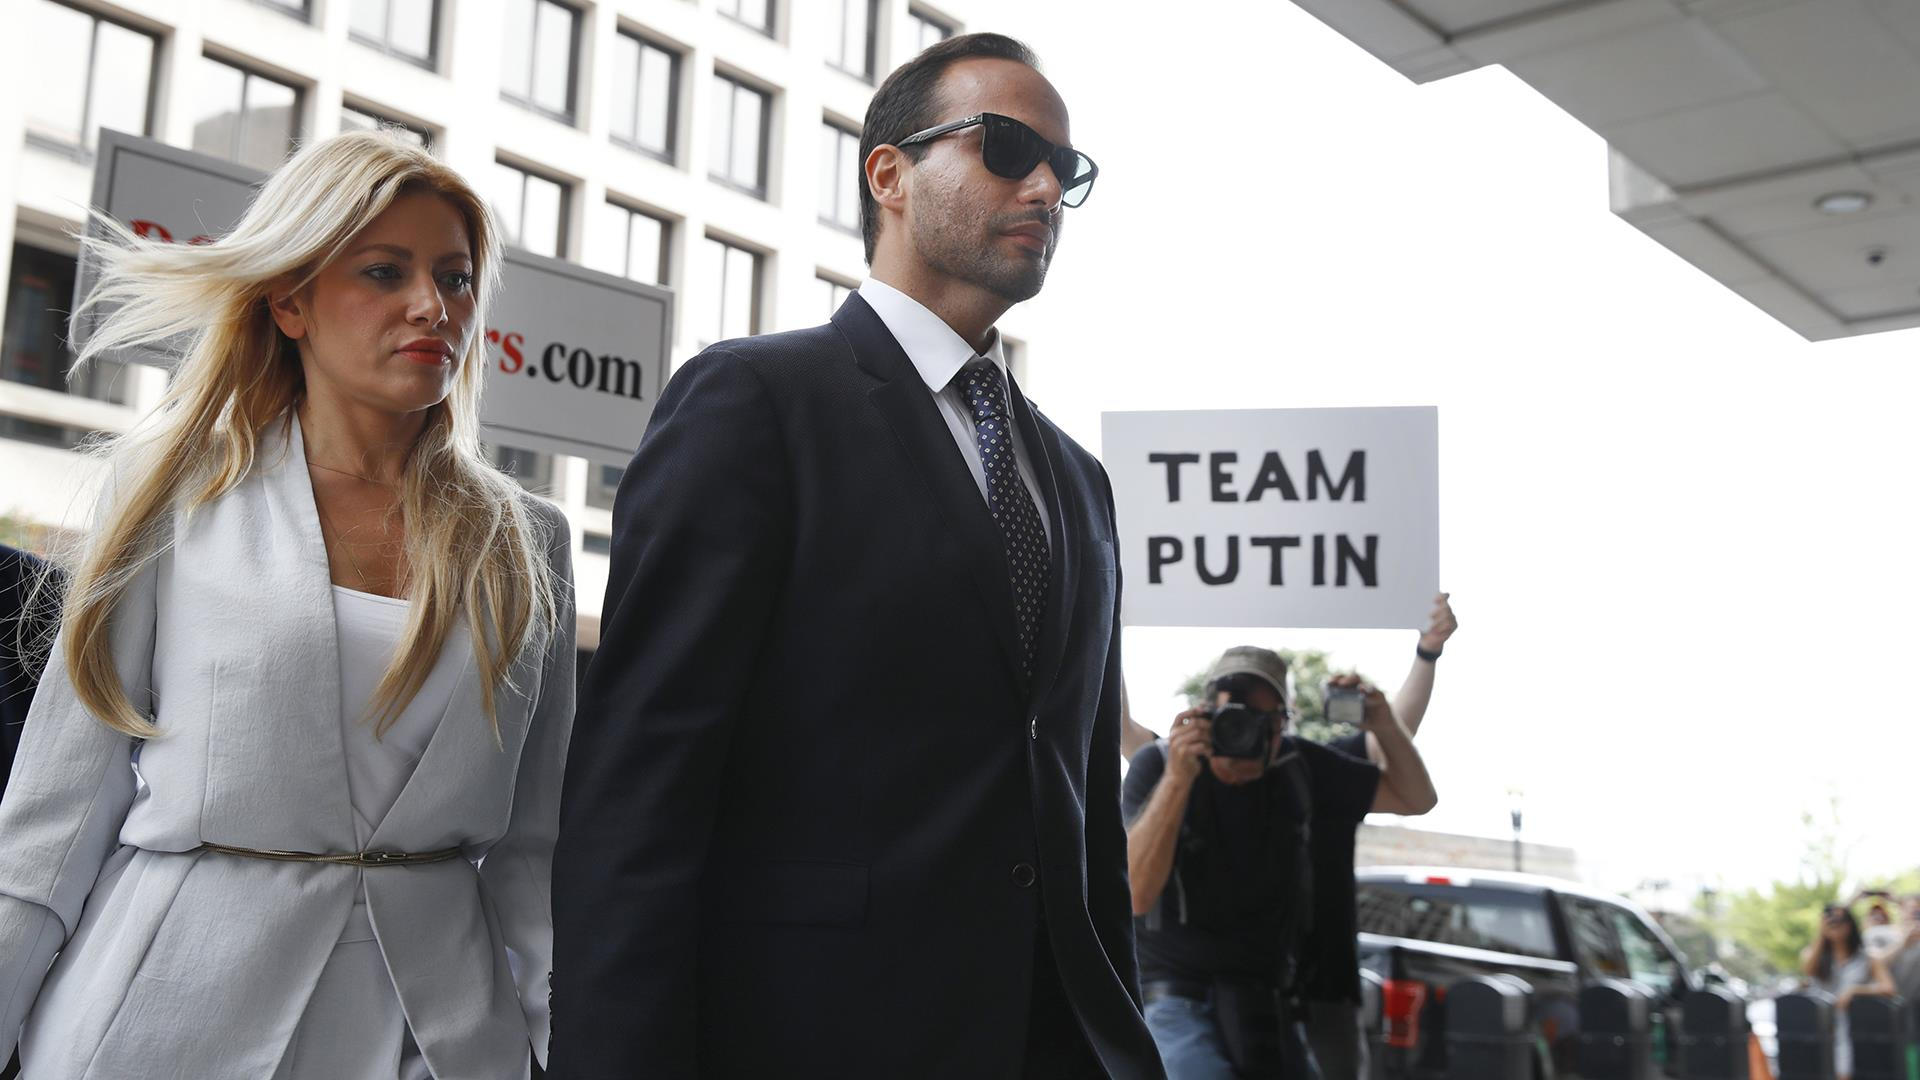 Papadopoulos sentenced to 14 days in jail for lying to FBI in Mueller probe